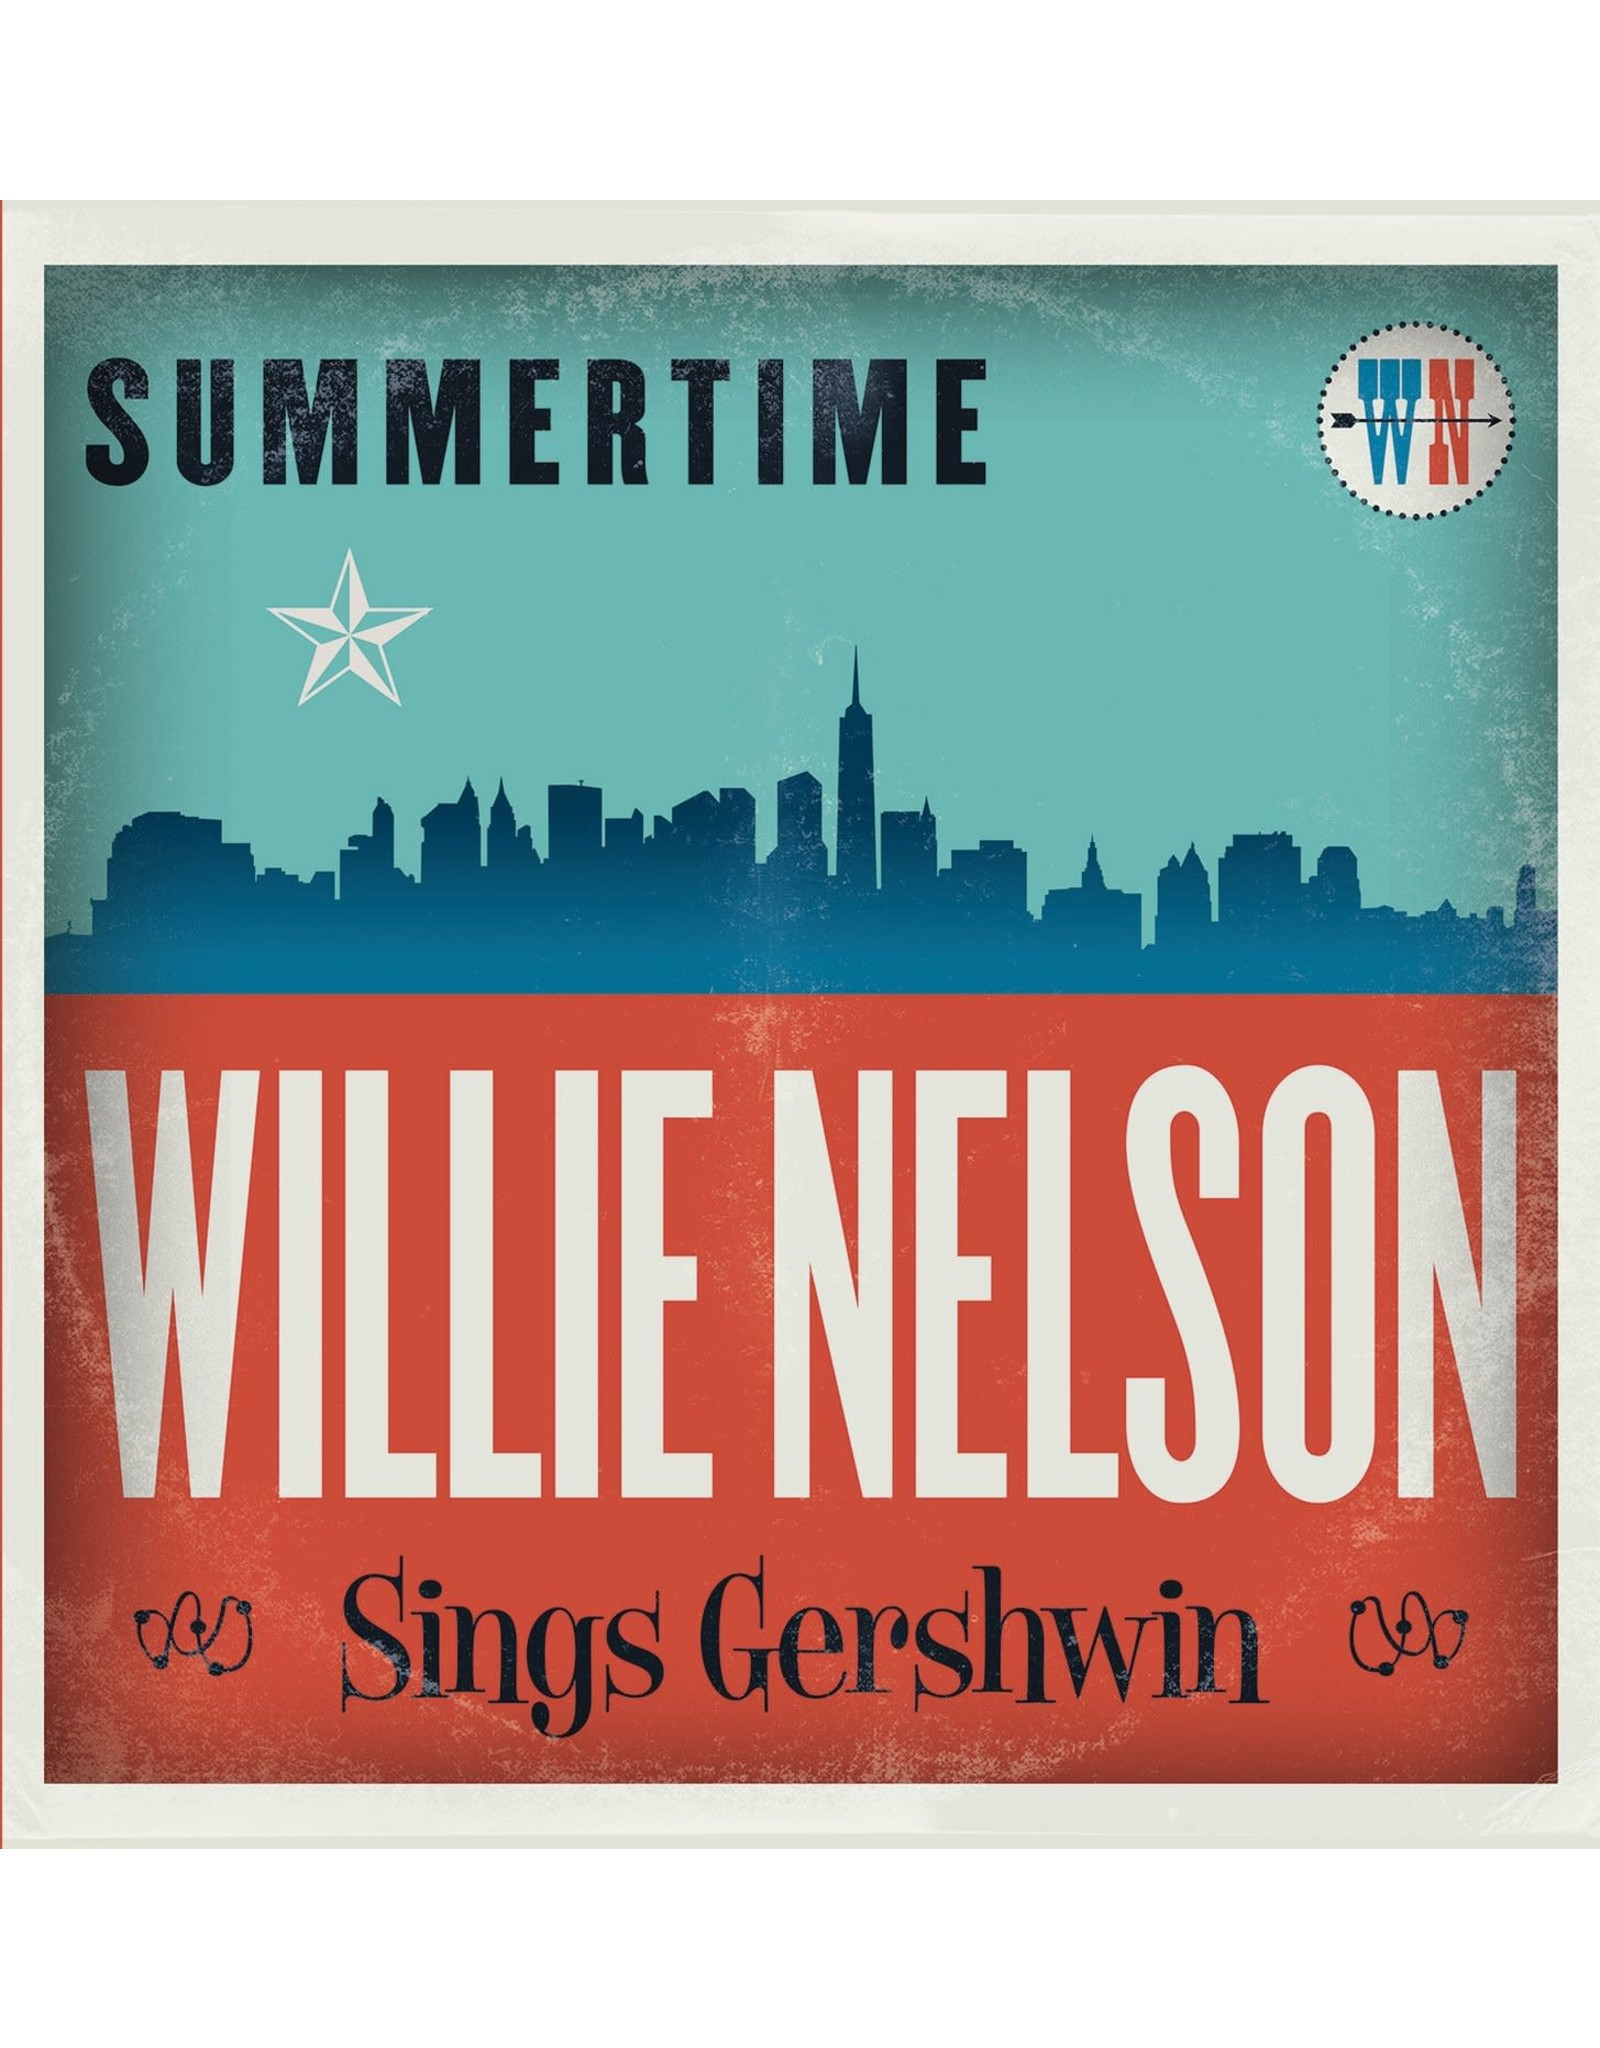 Nelson, Willie - Summertime: Willie Nelson Sings Gershwin LP